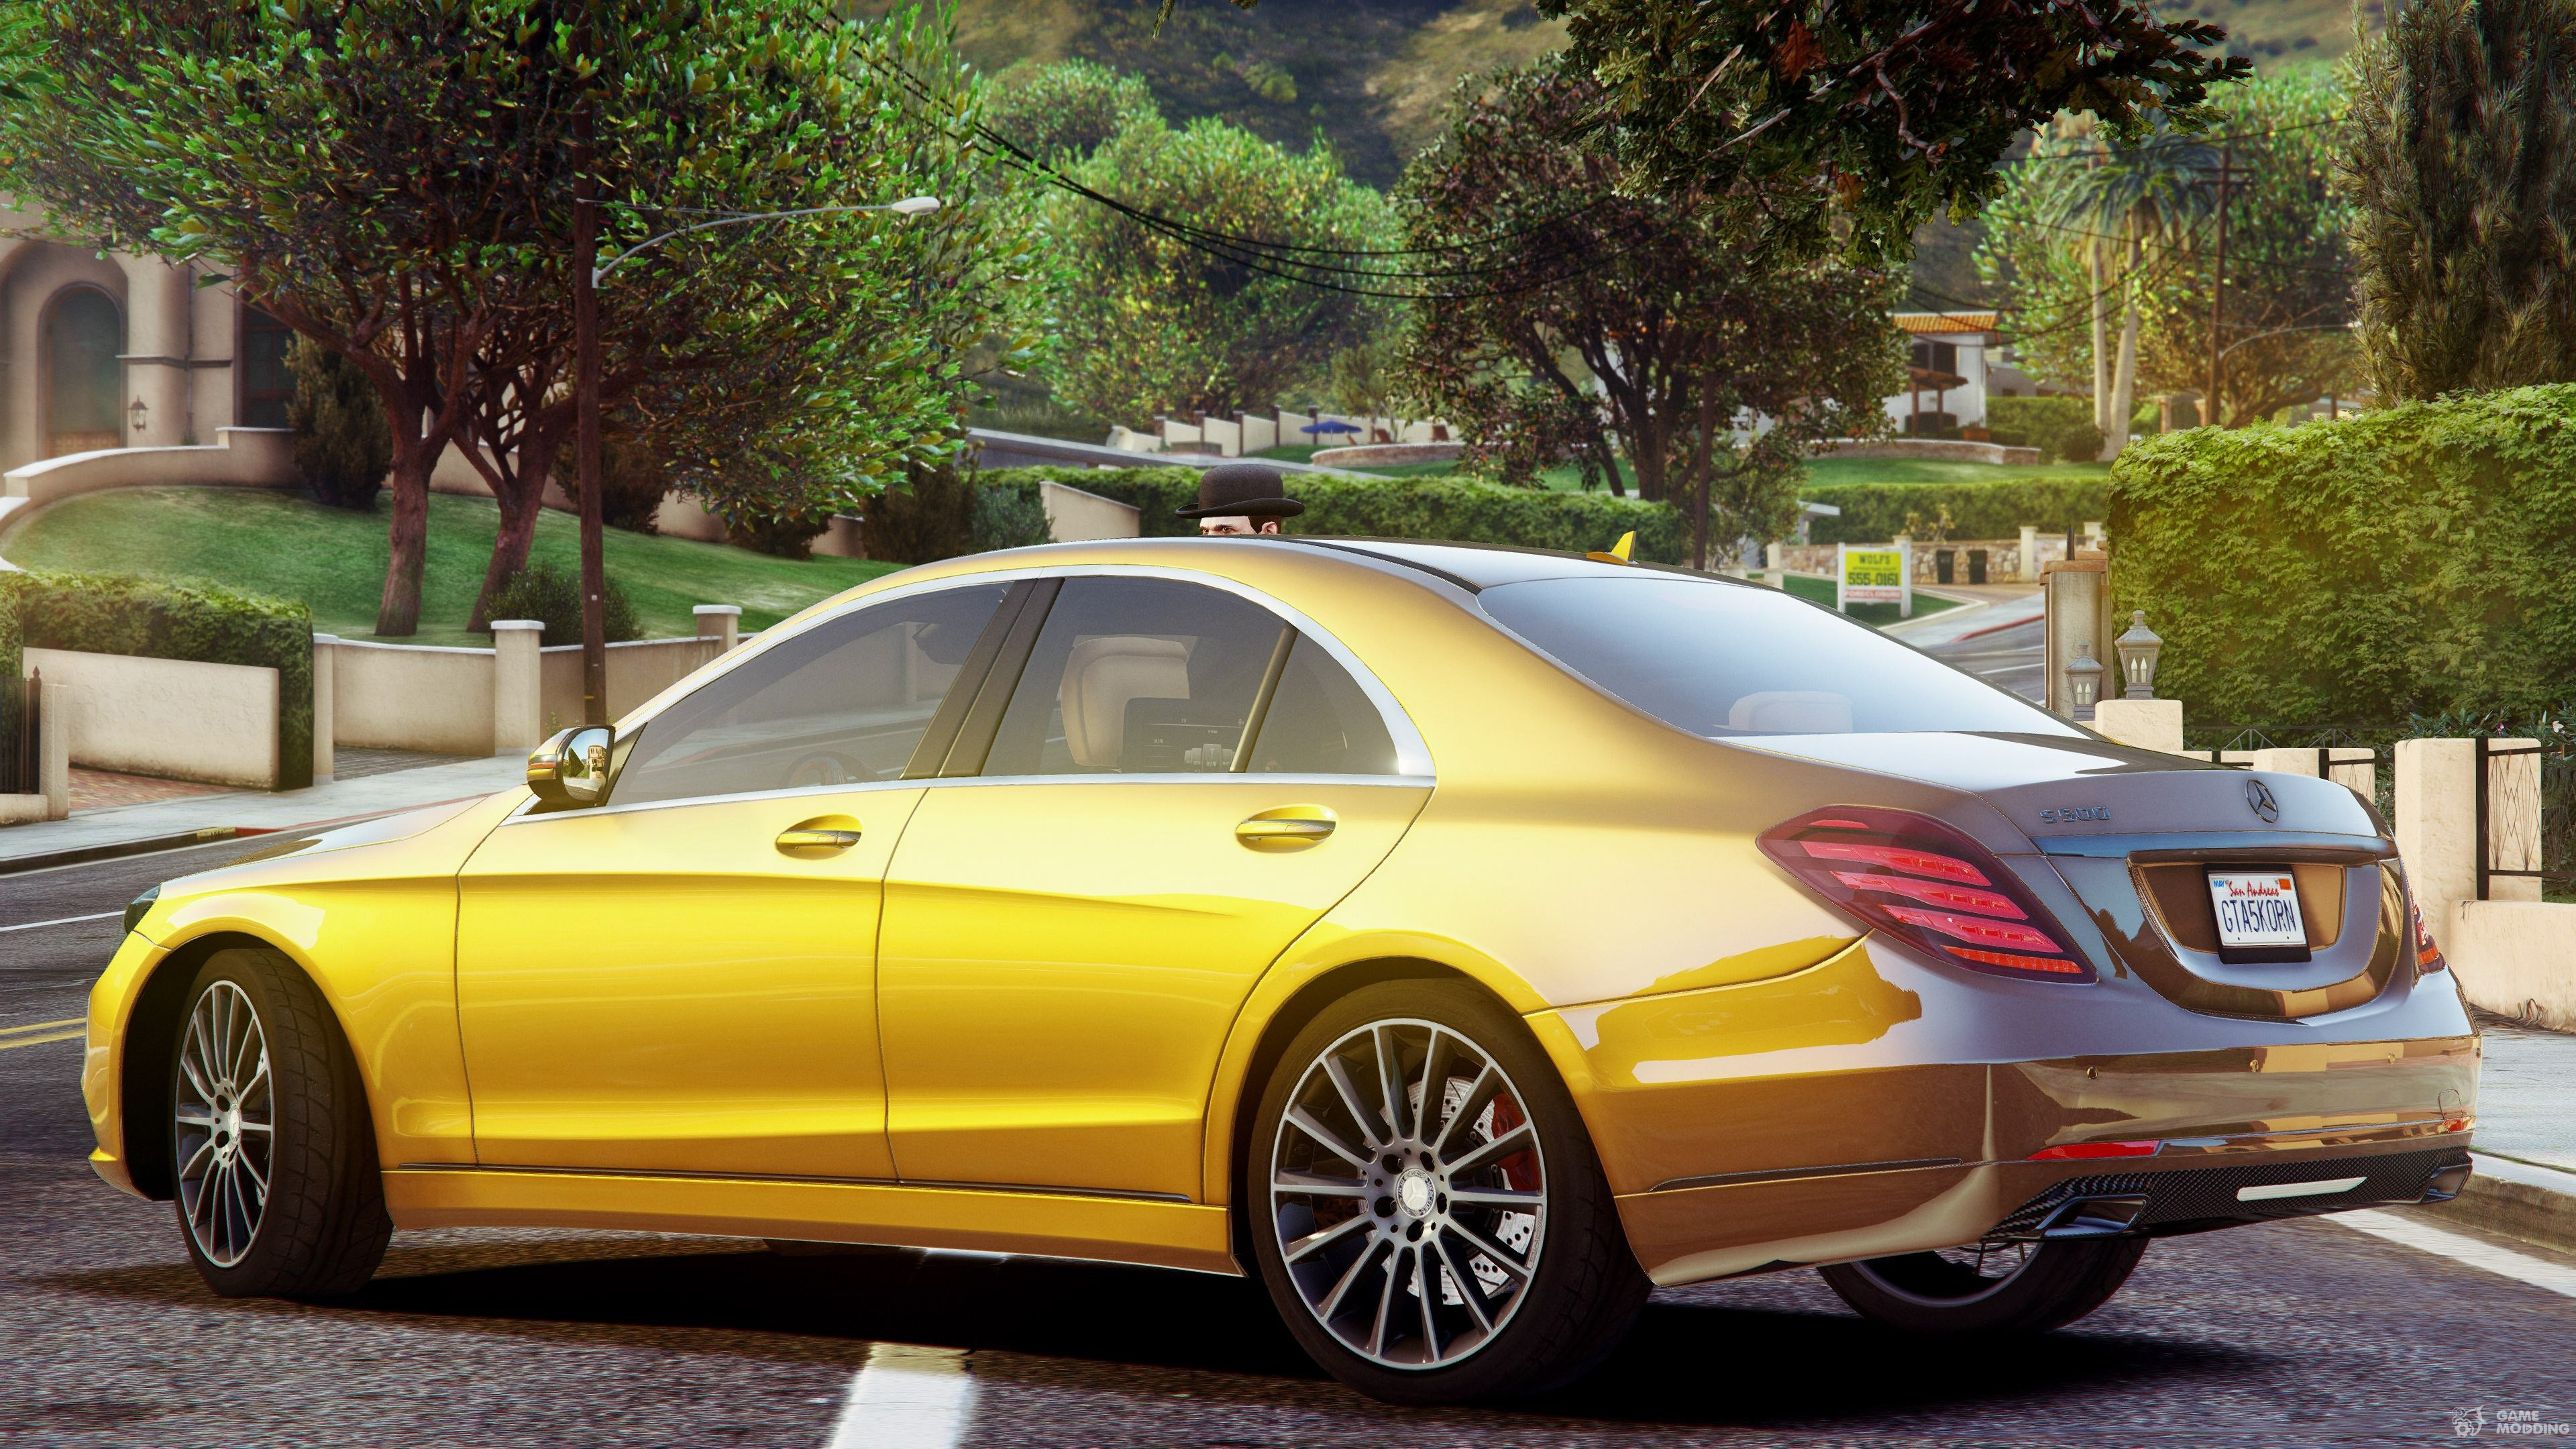 Mercedes benz s500 w222 2 2 for gta 5 for Mercedes benz s 500